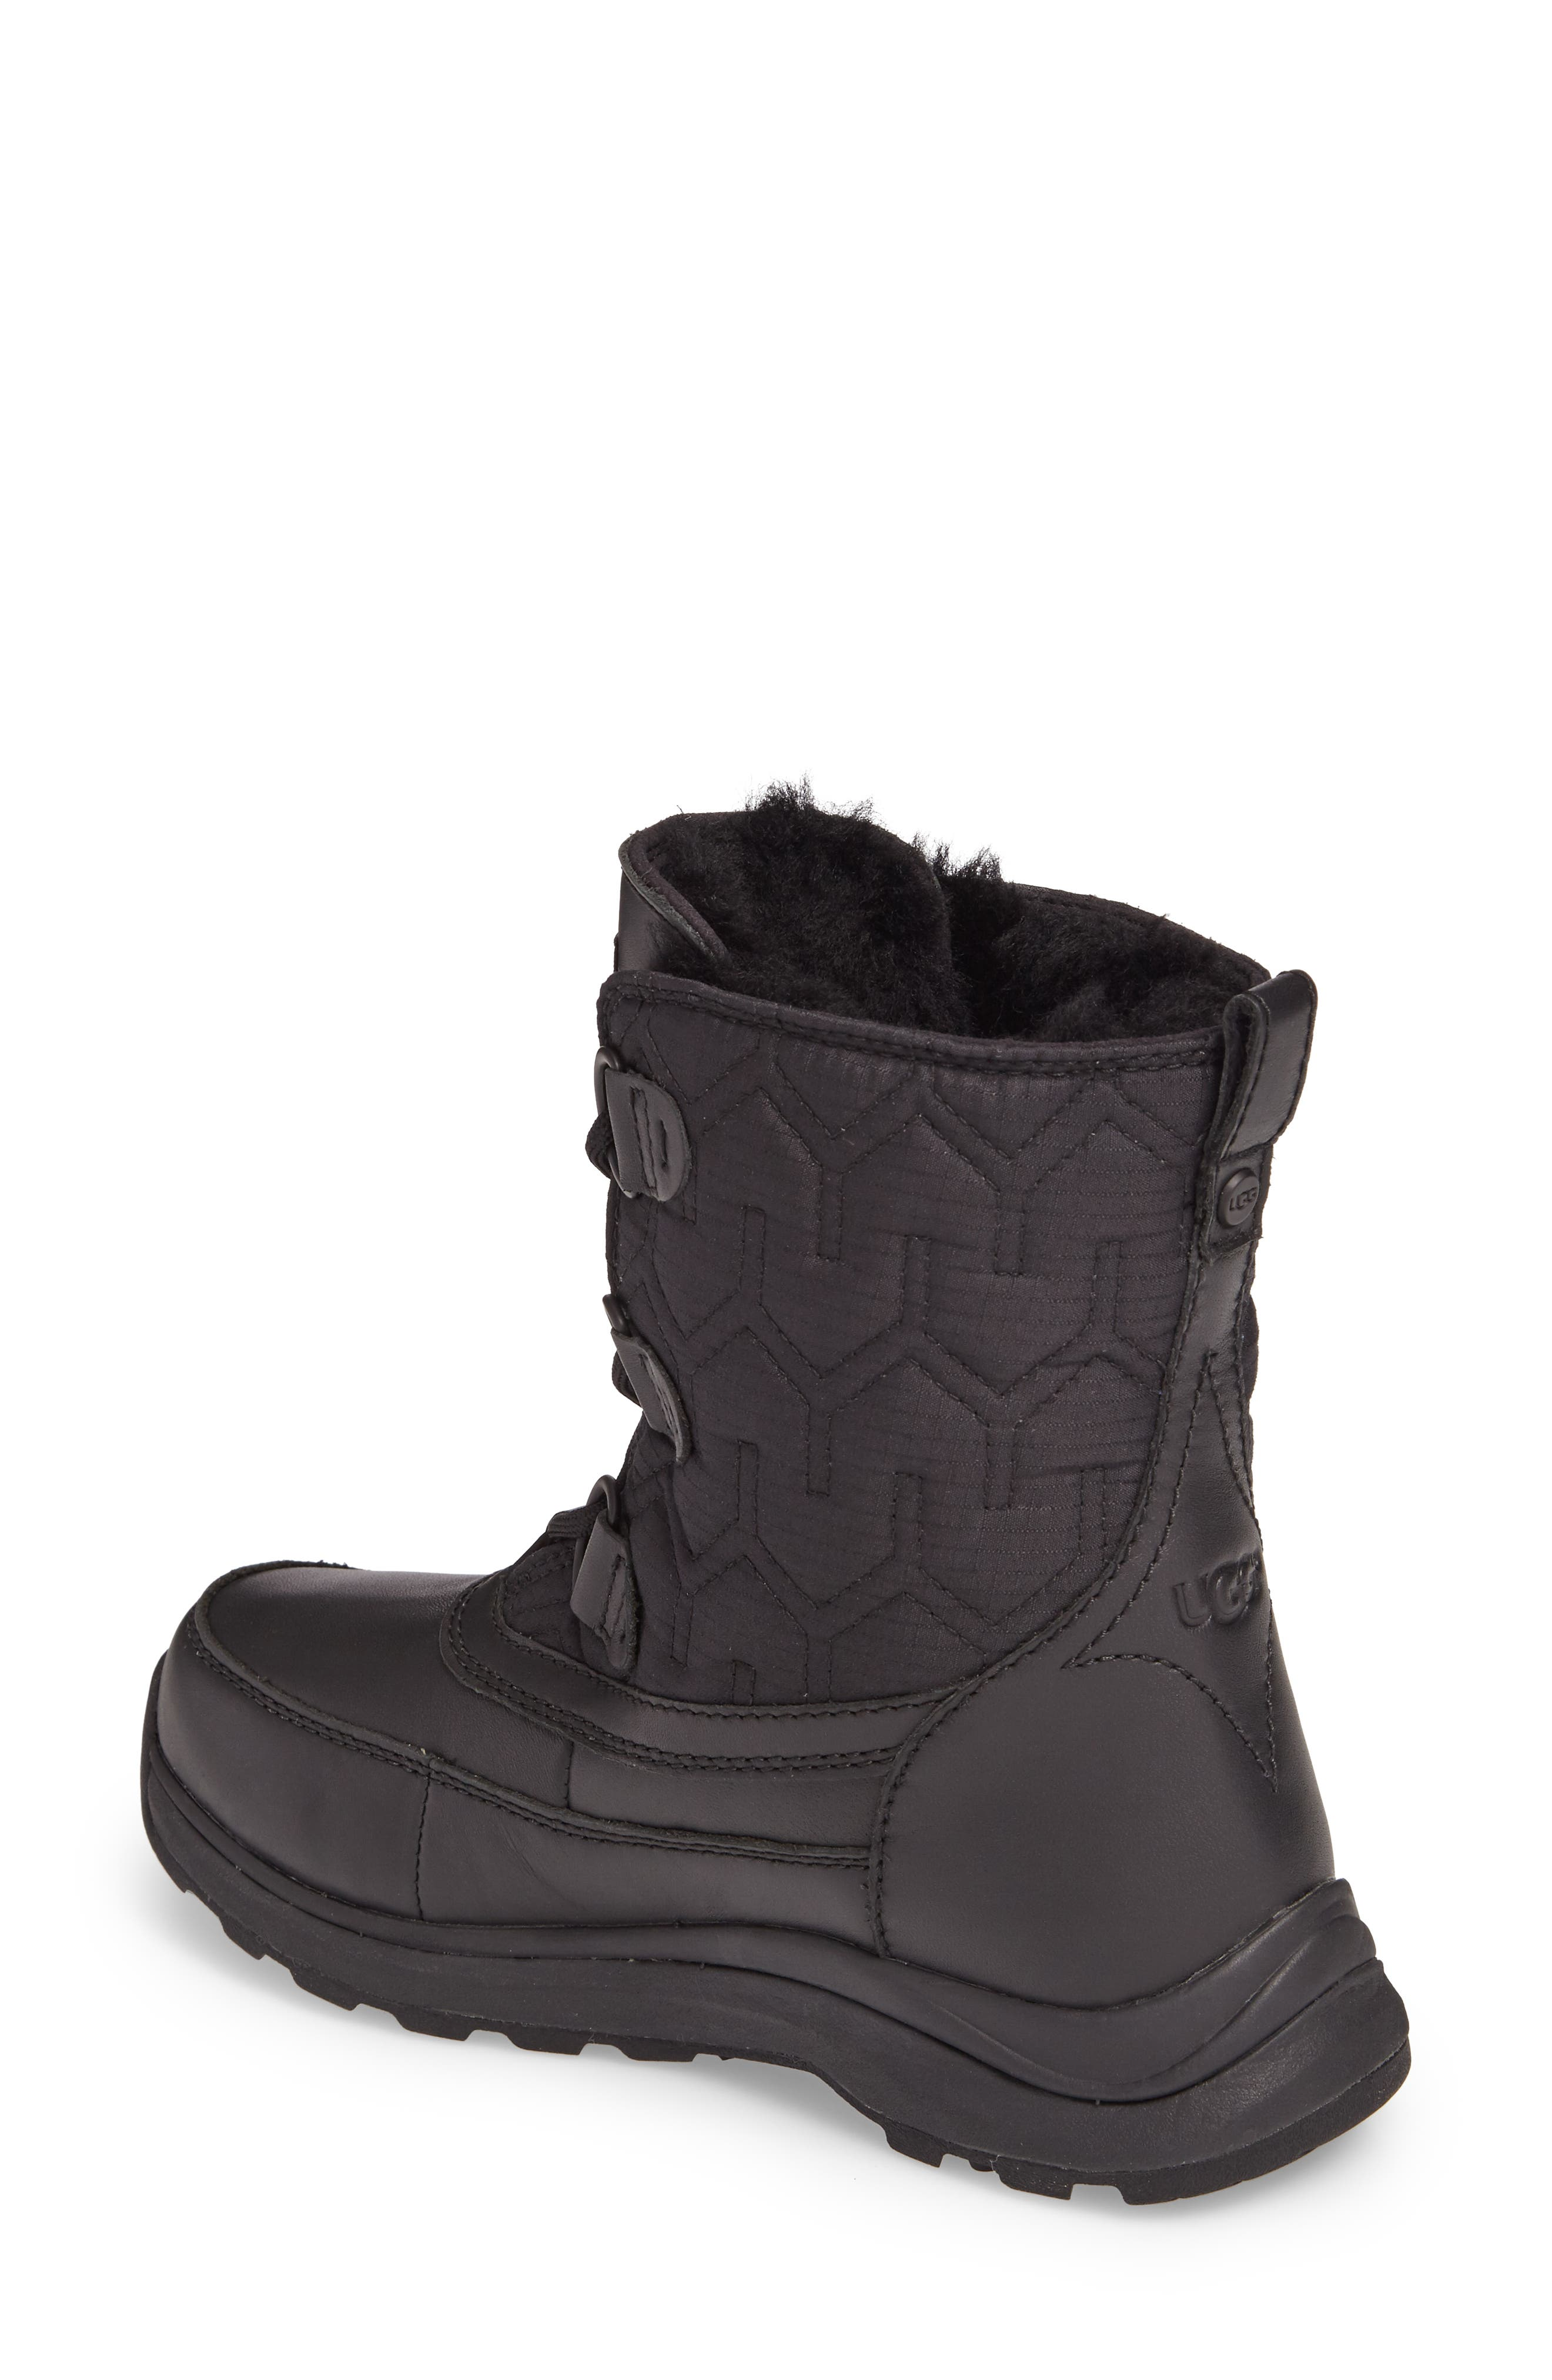 Lachlan Waterproof Insulated Snow Boot,                             Alternate thumbnail 4, color,